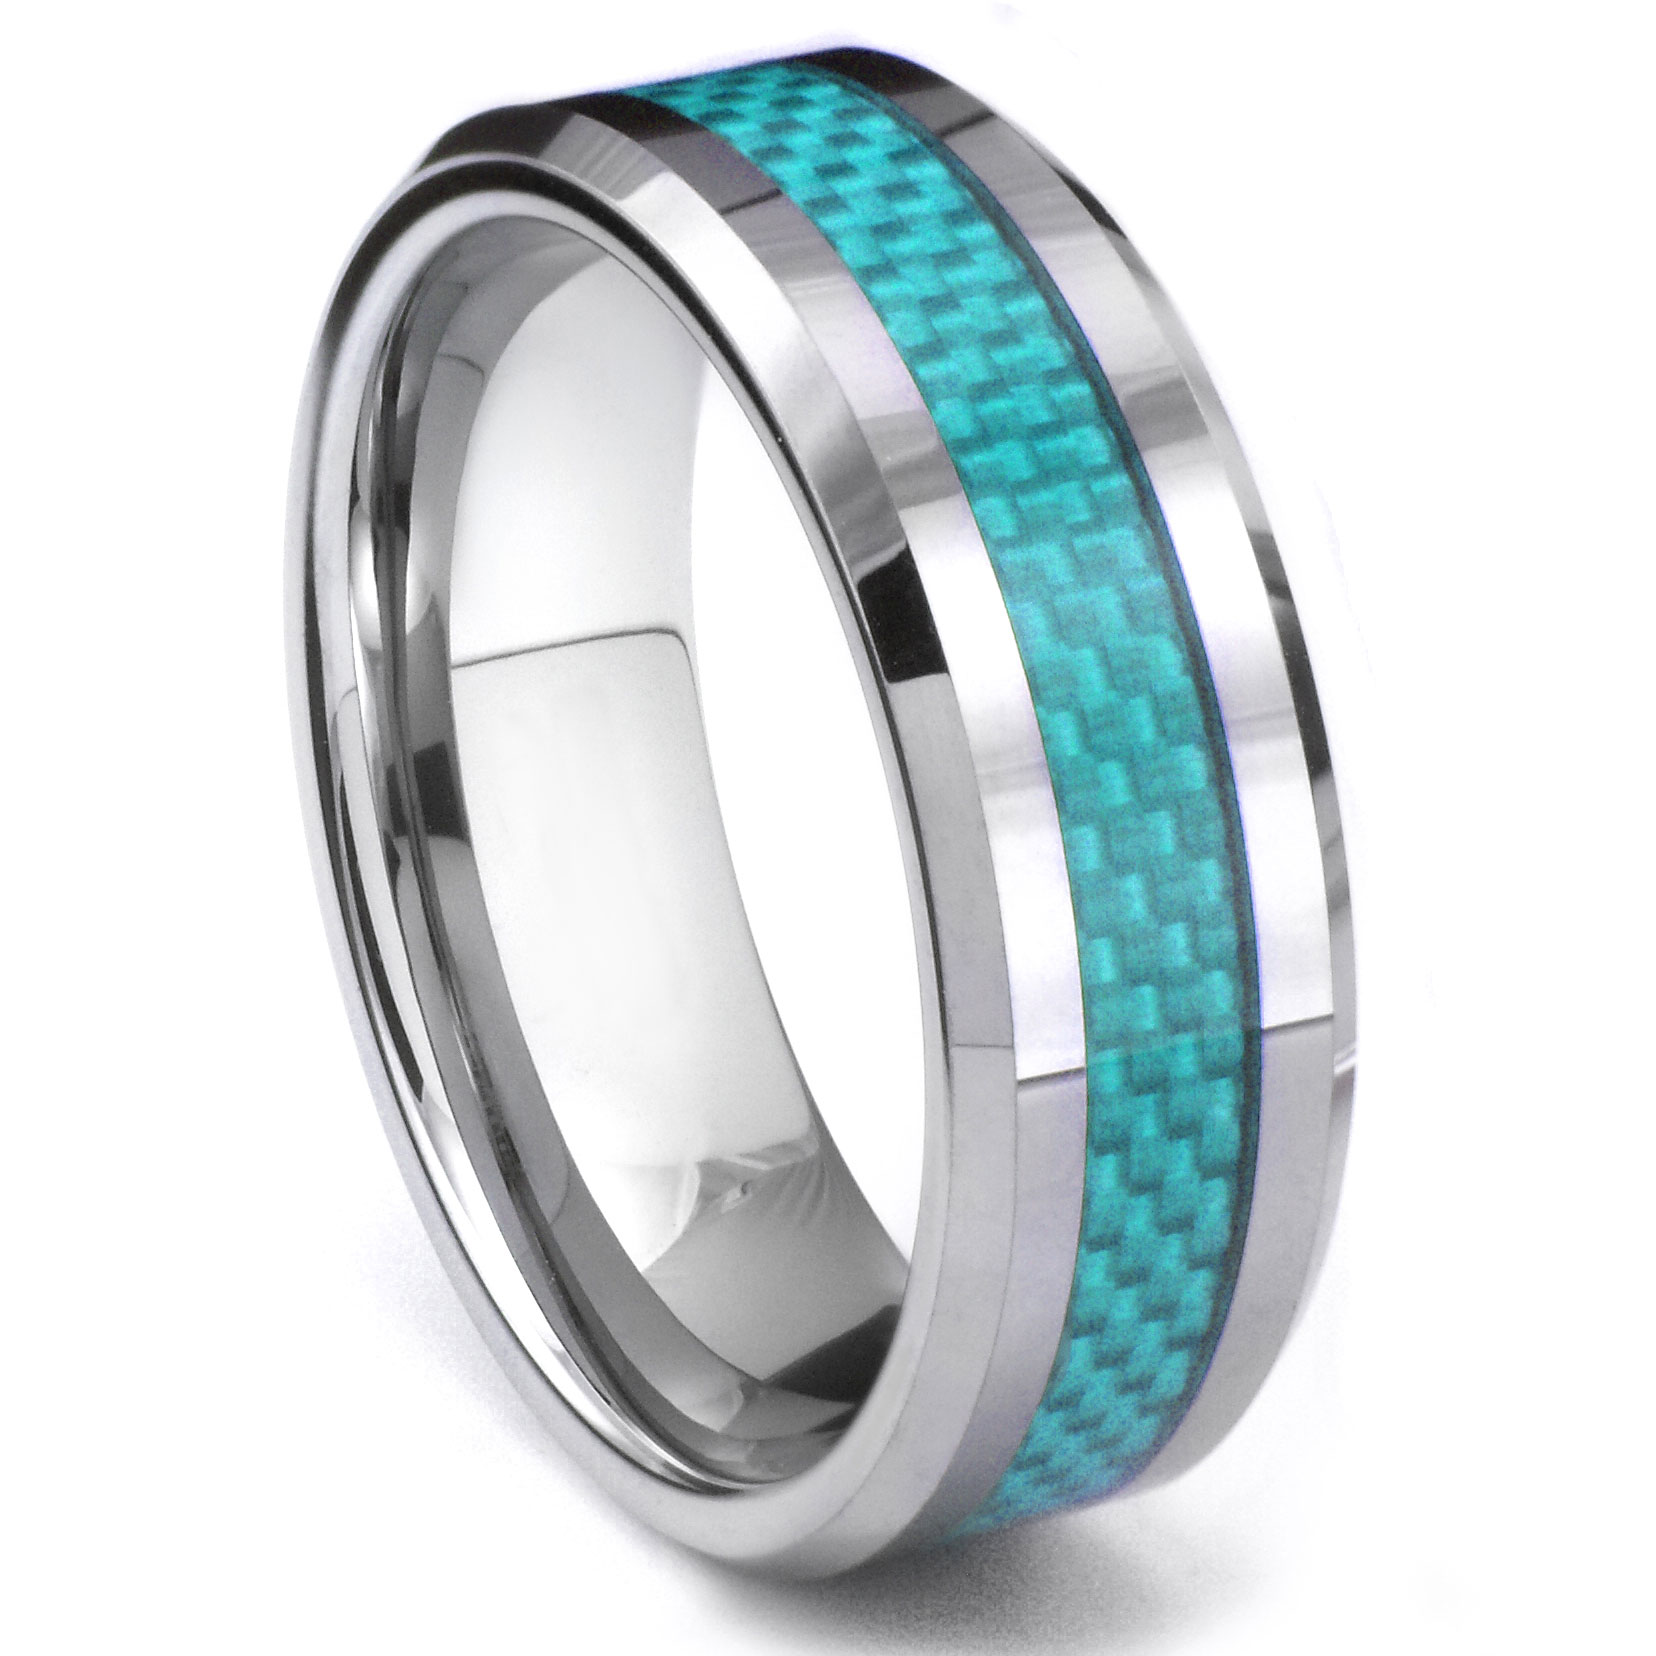 ringswedding pin carbon ringsturquoise fibercarbon rings lume turquoise and fiber traditional engagement wedding jewelrycarbon ring